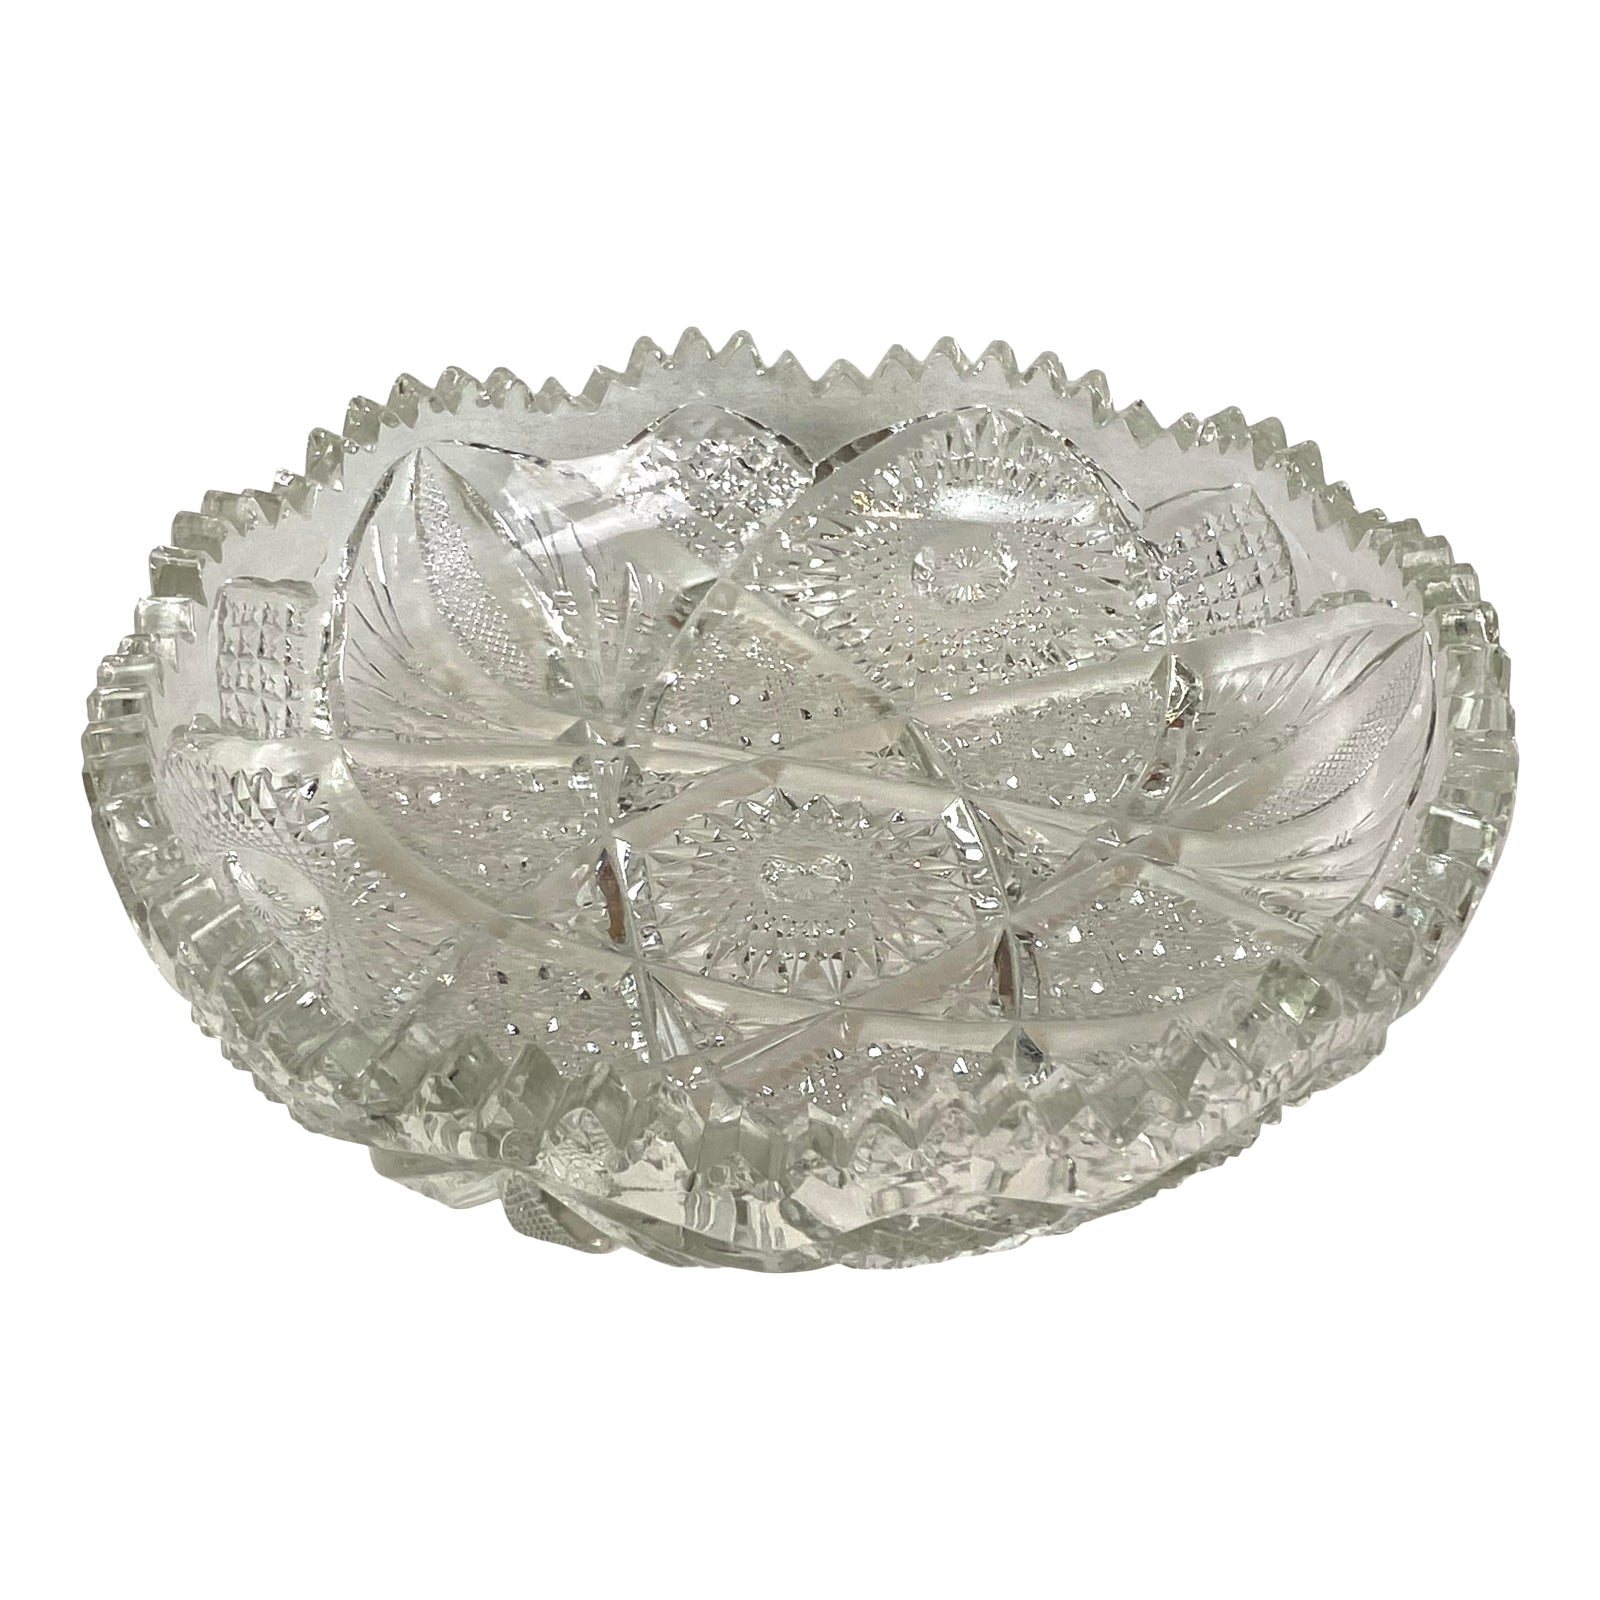 Large Ornate Crystal Cut Glass Serving Bowl Ashtray